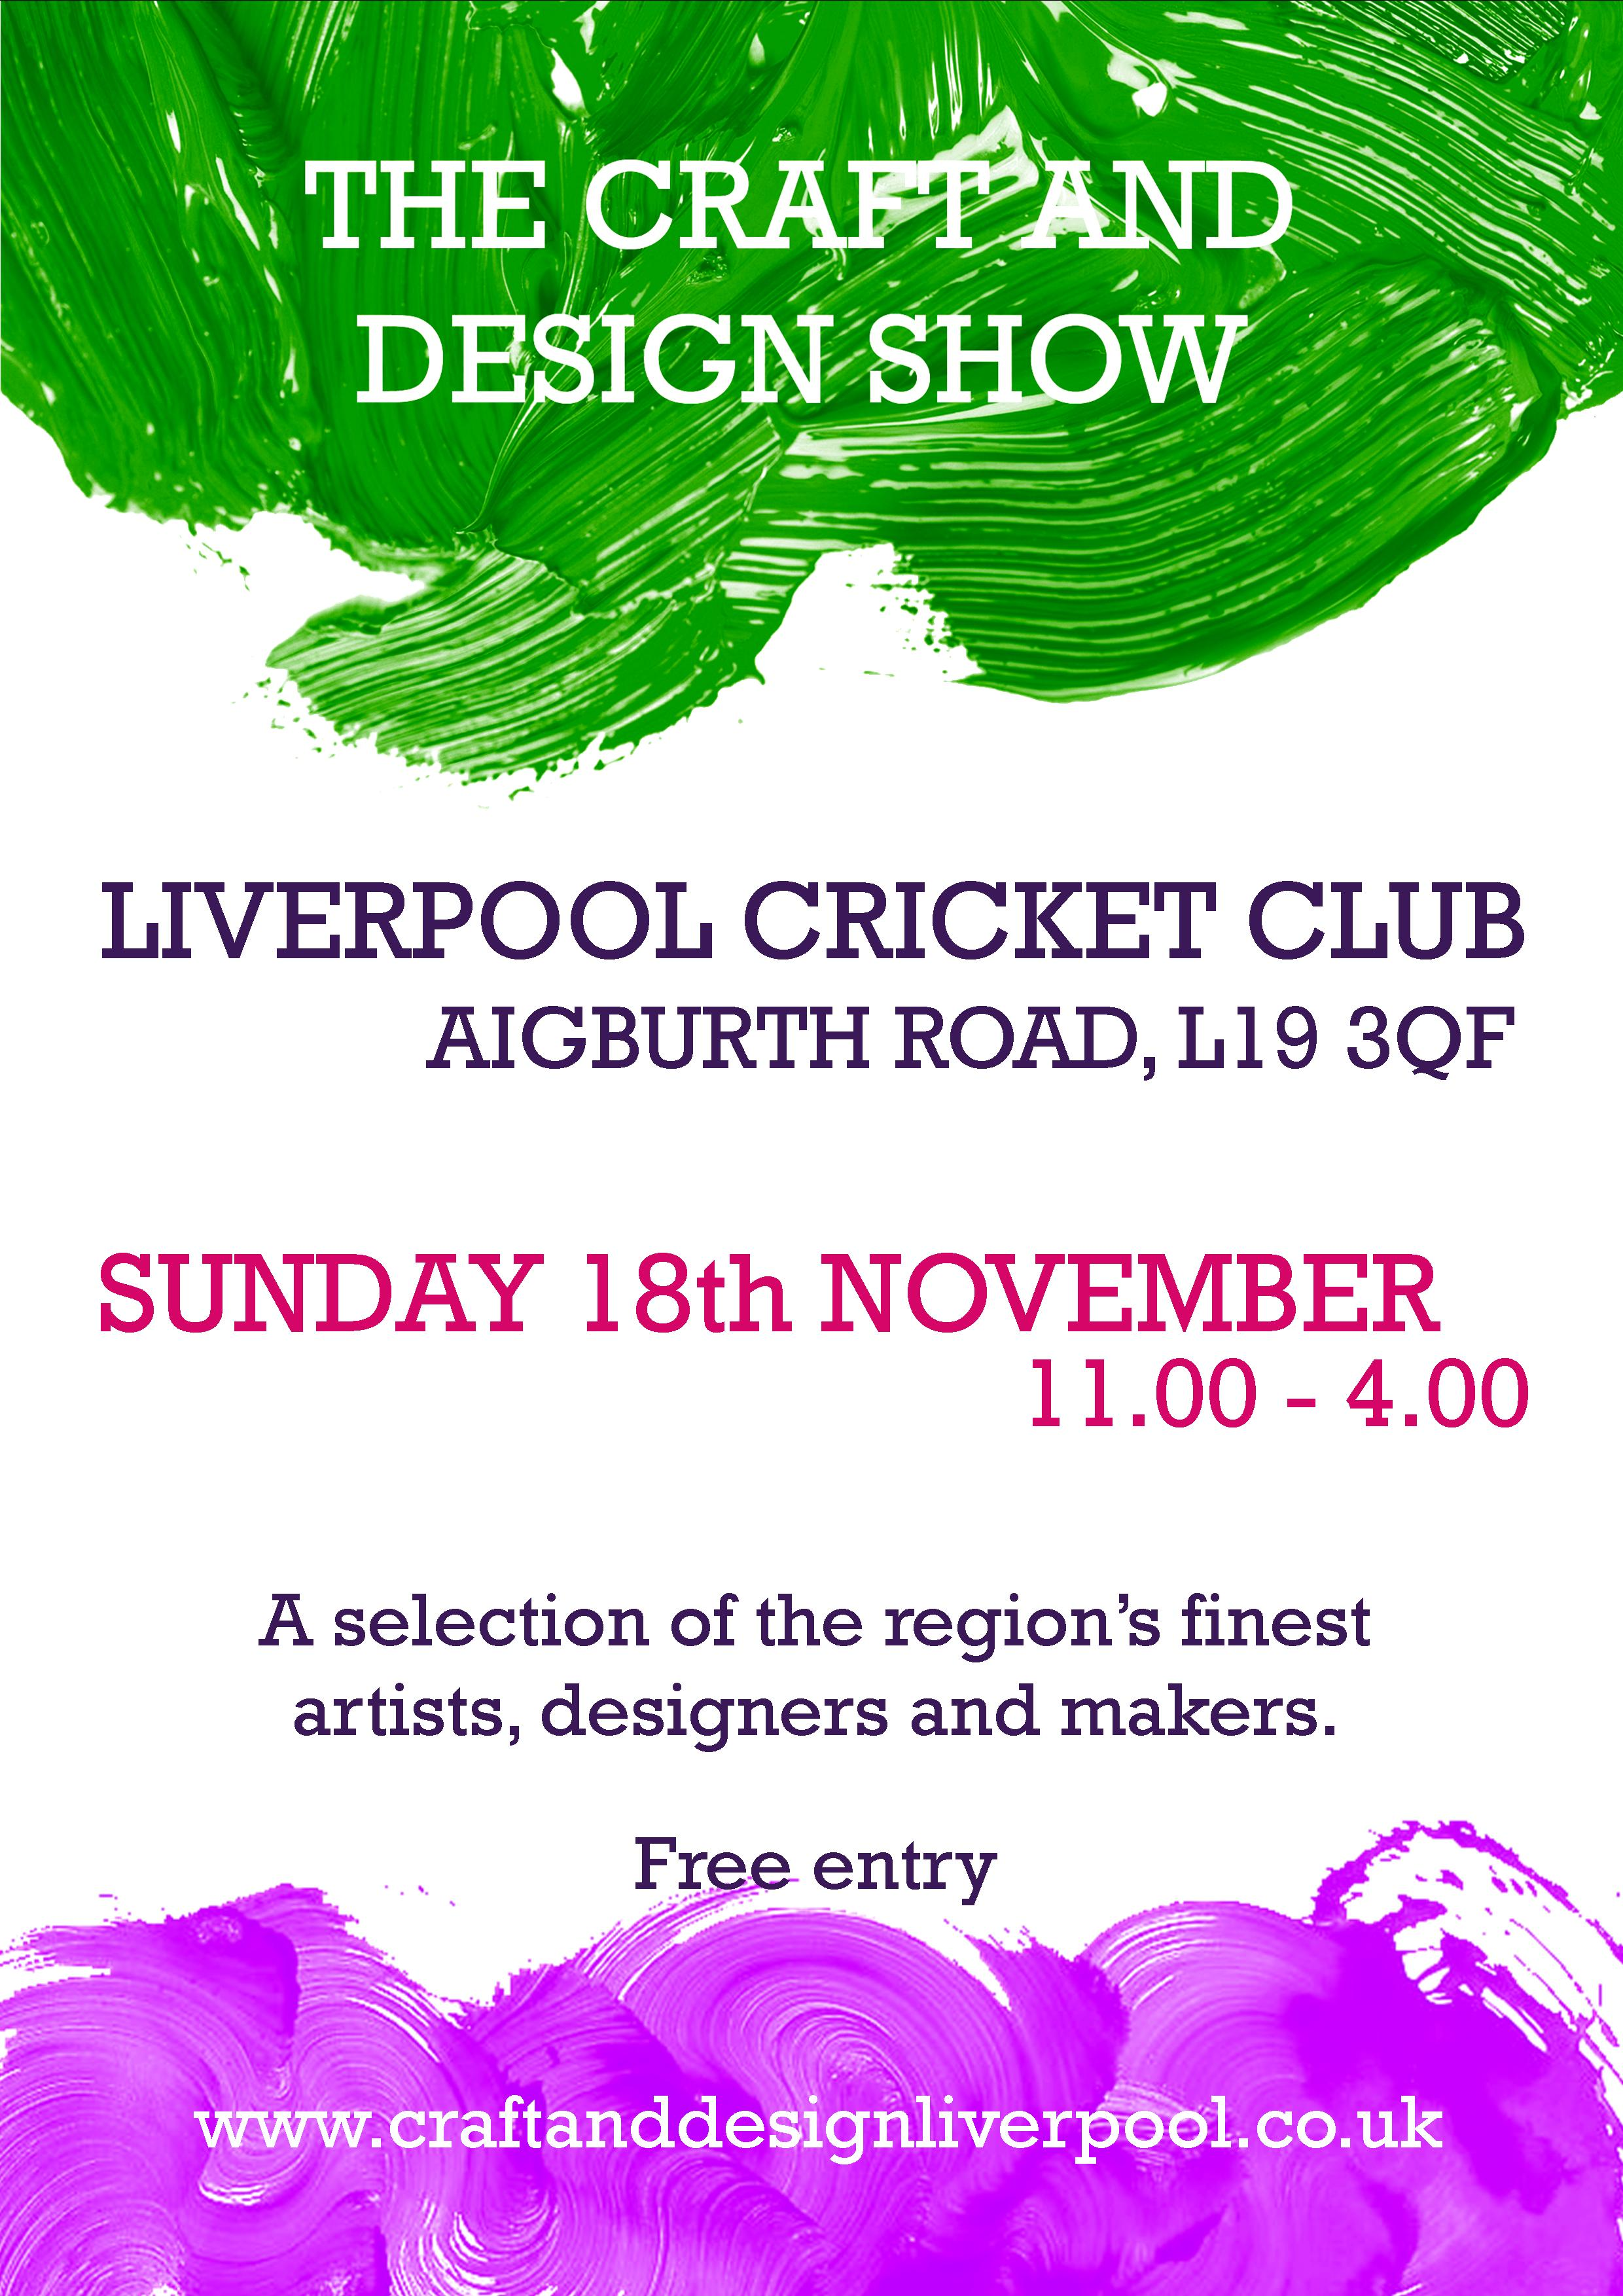 Liverpool Cricket Club: The Craft and Design Show